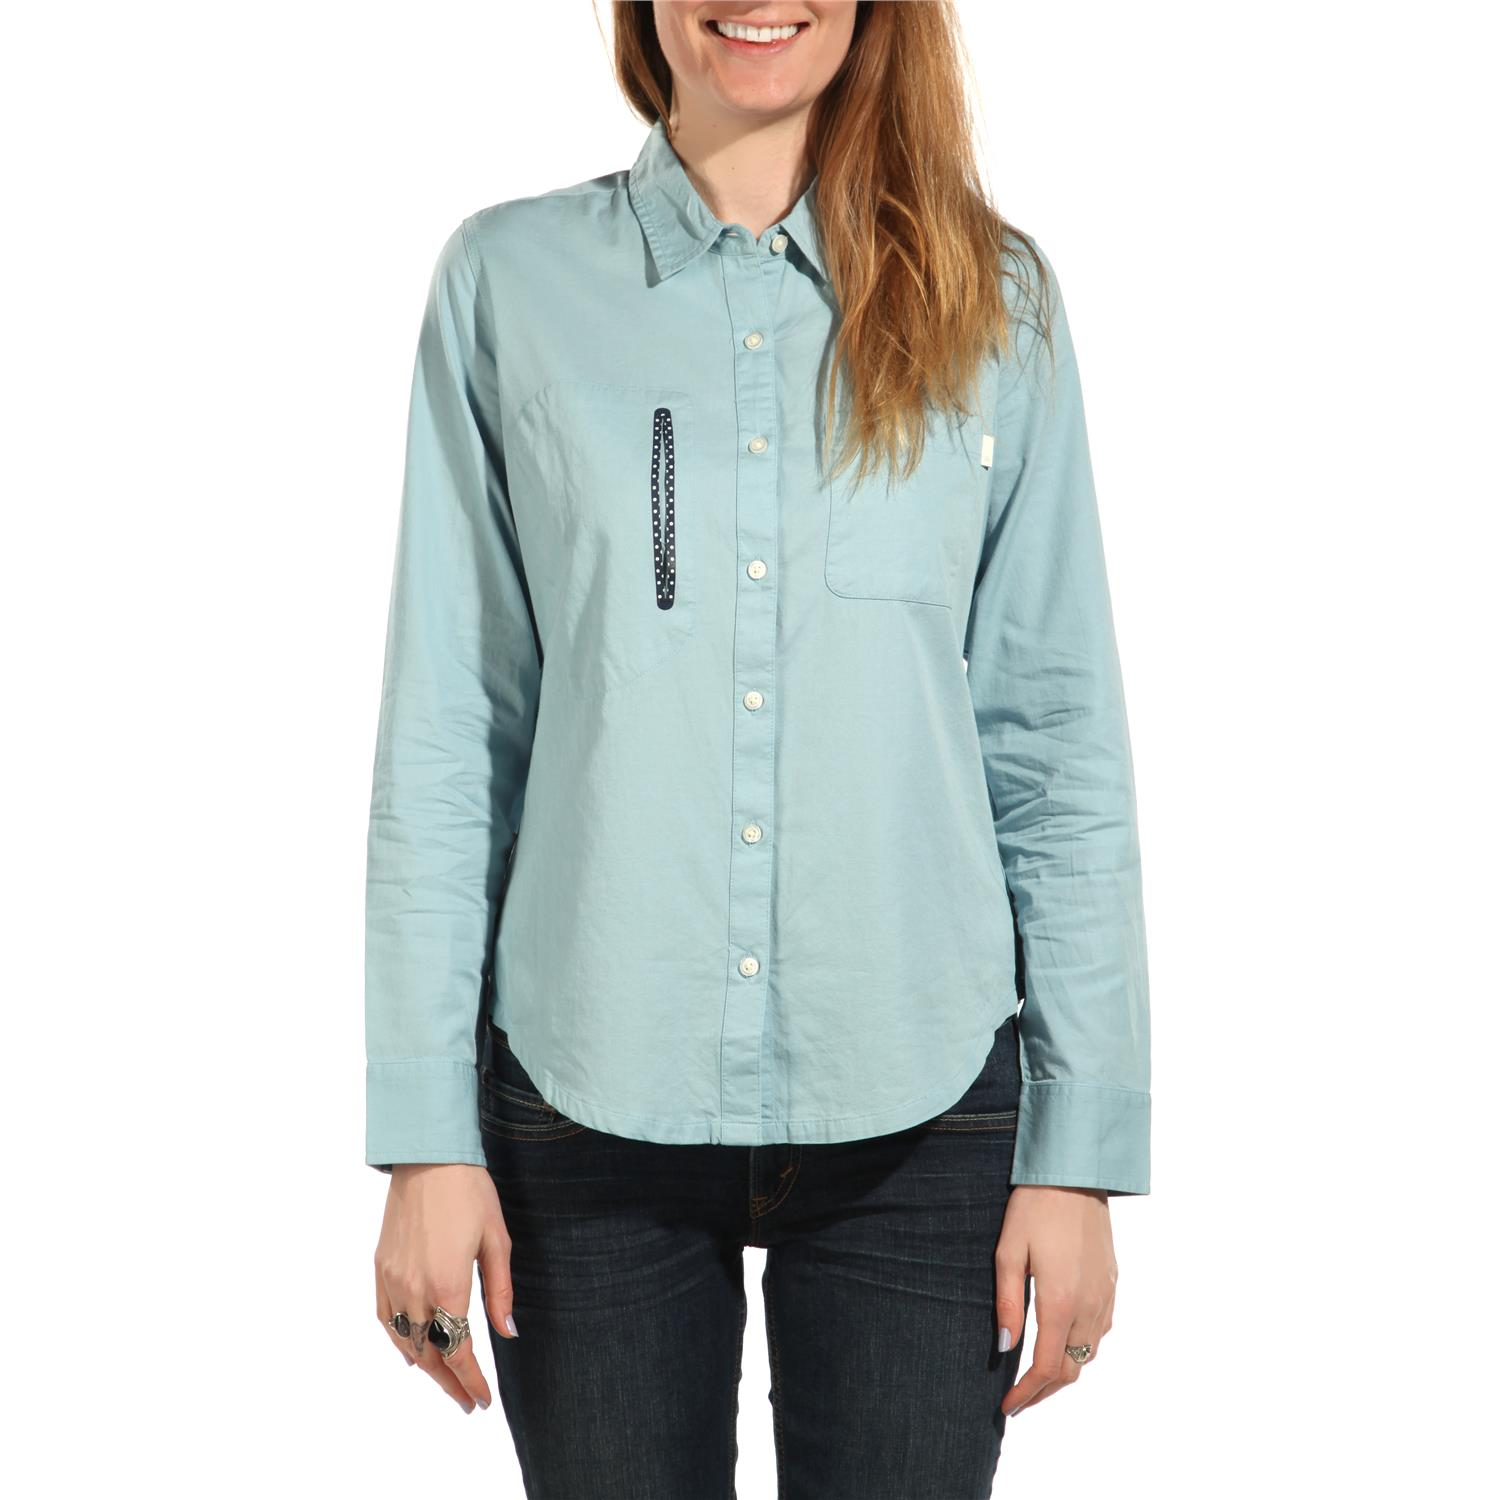 Find a Men's Button Down Shirt, a Women's Button Down Shirt, and more, at Macy's. Macy's Presents: The Edit - A curated mix of fashion and inspiration Check It Out Free Shipping with $49 purchase + .